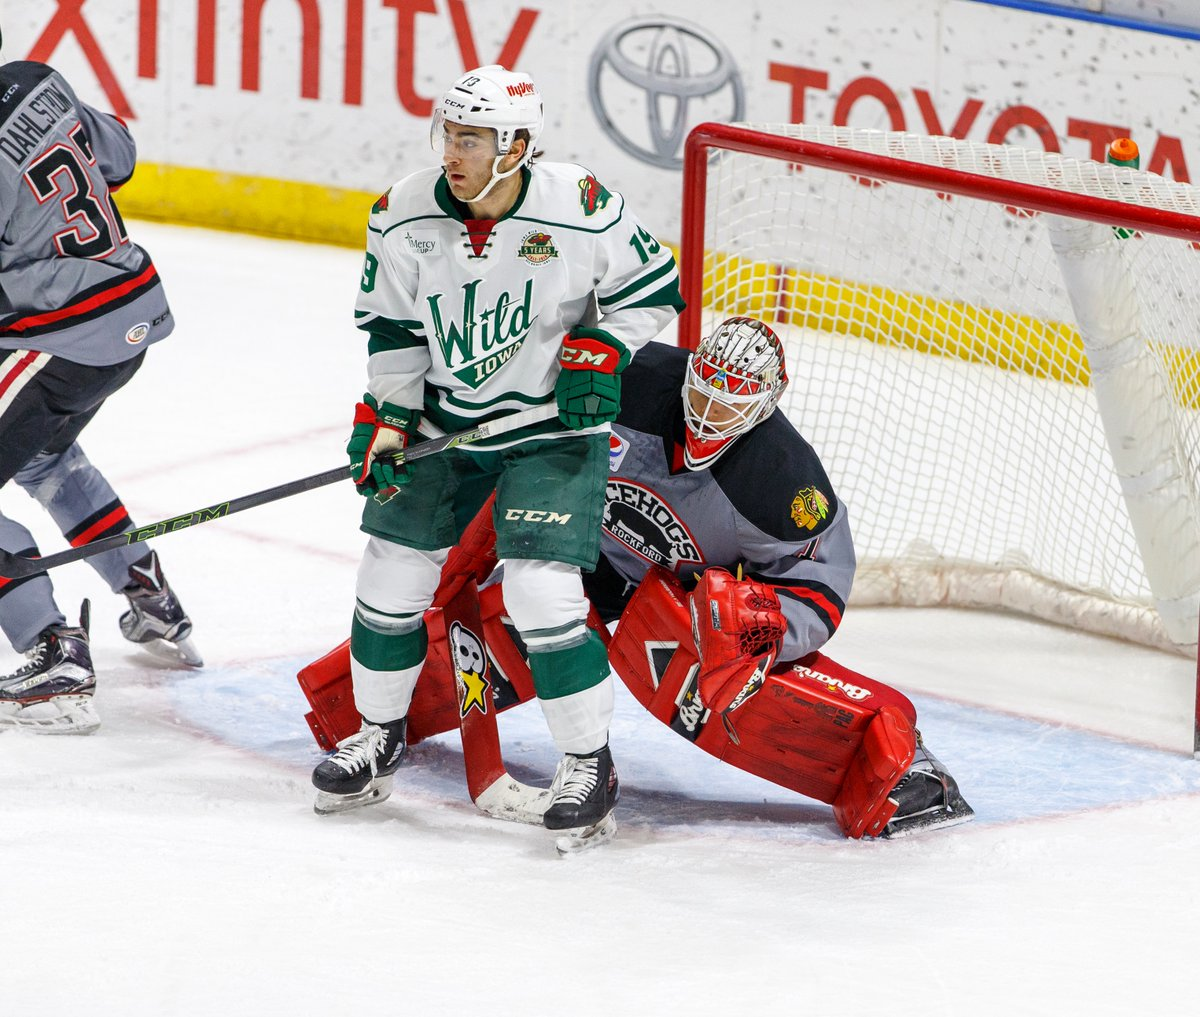 AHL: Recap - IceHogs Drop Two Of Three To End 2017 Calendar